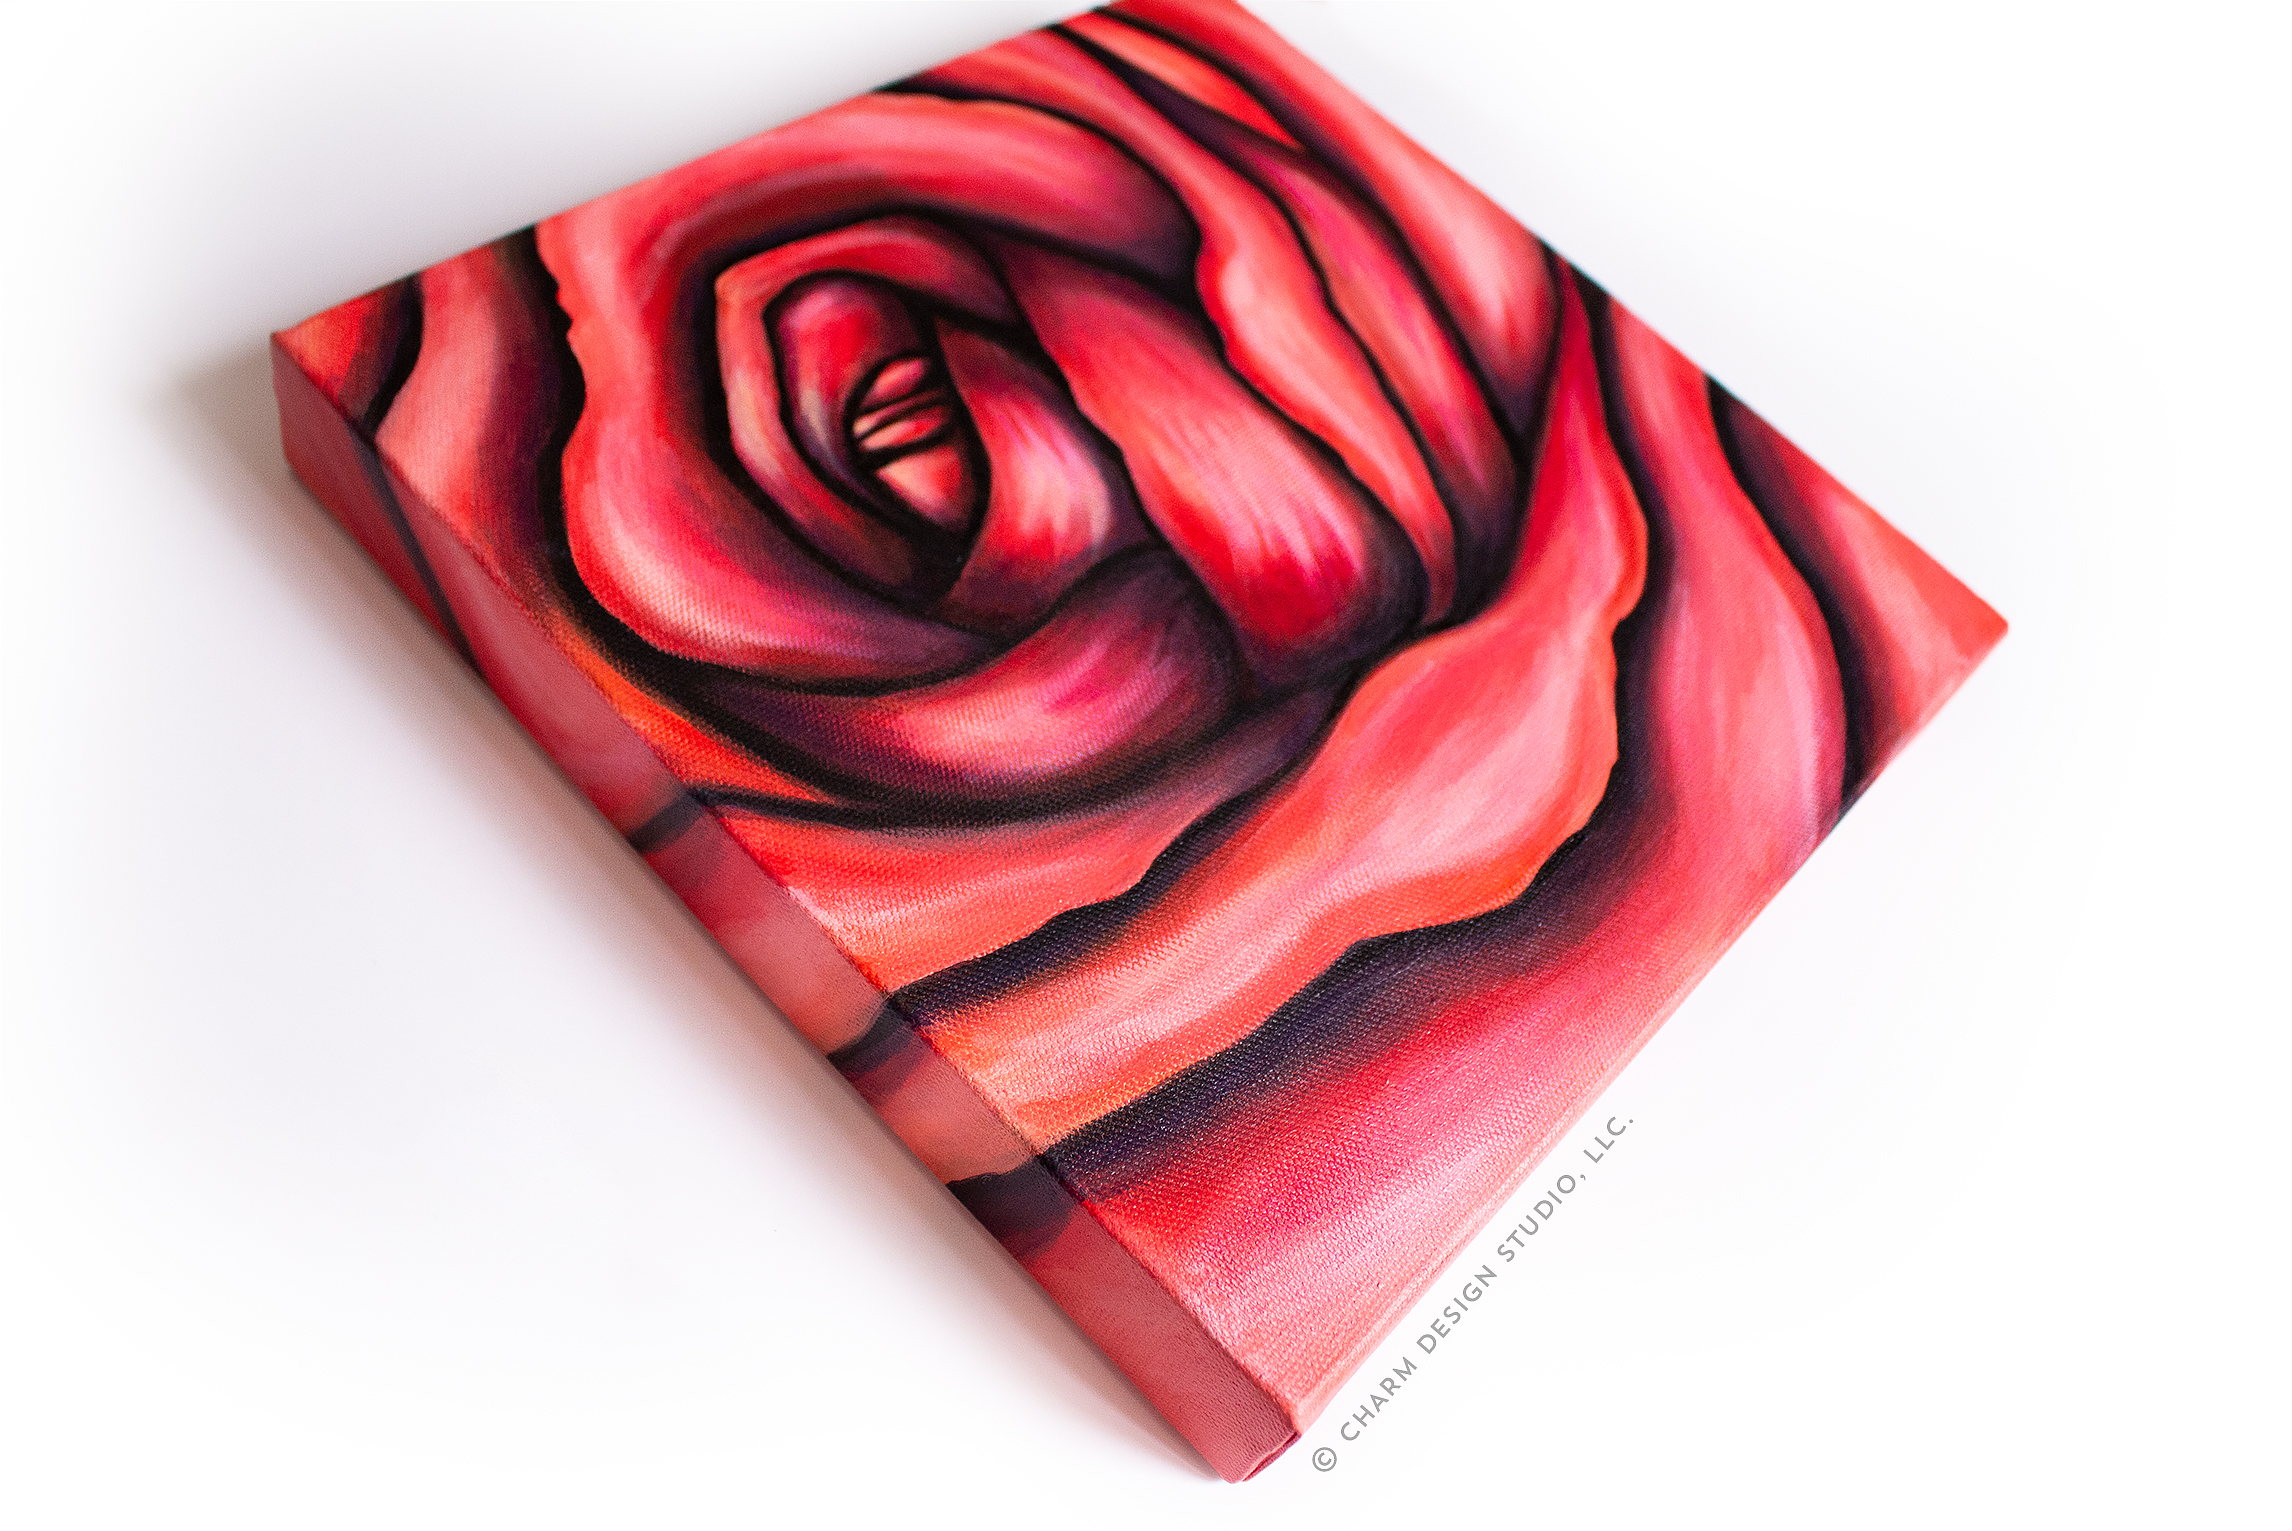 Charm Design Studio / Botanicals and Beauty - Rose detail image